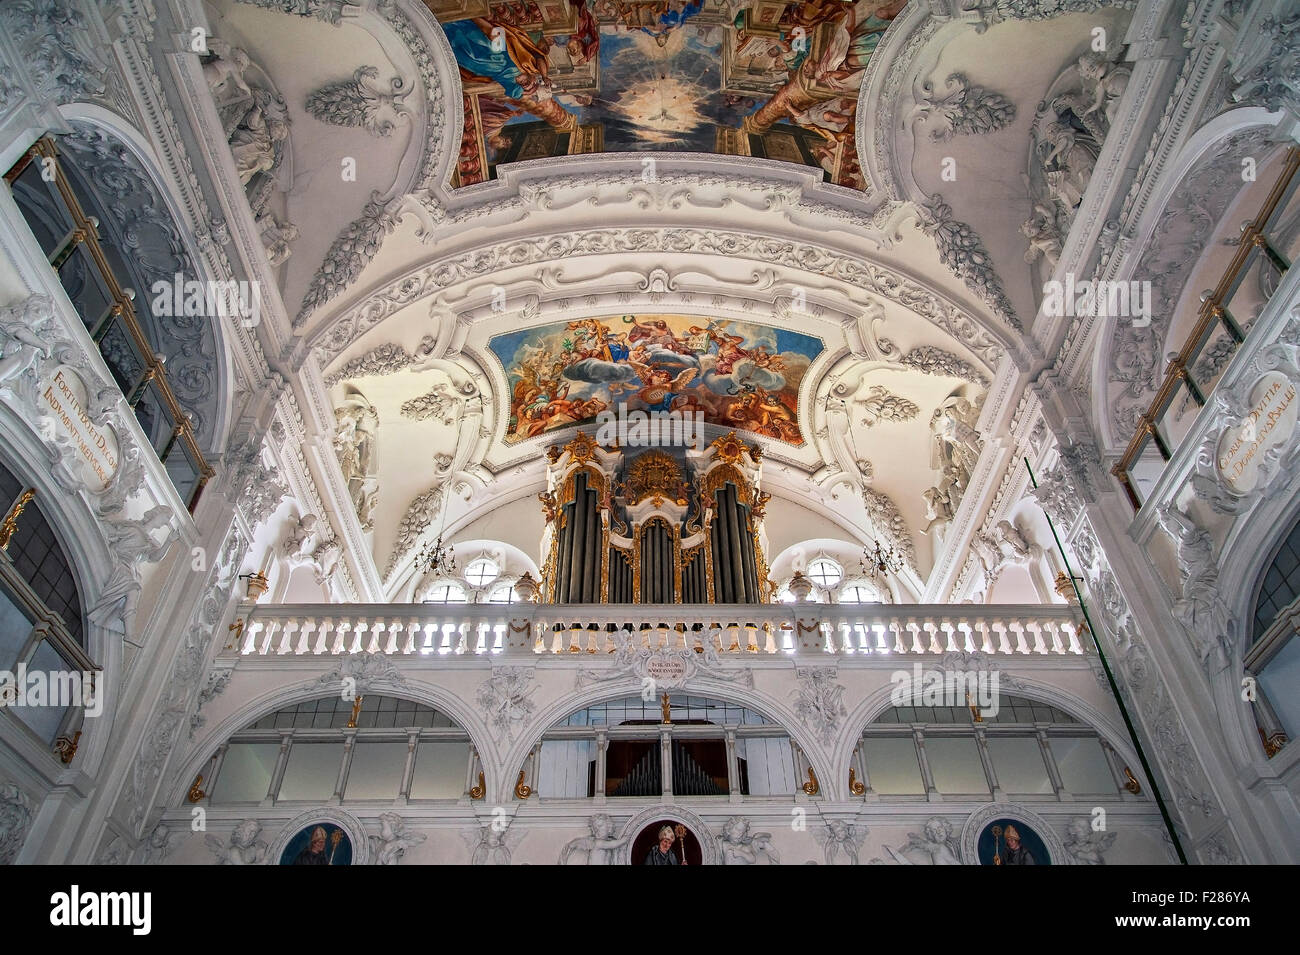 Organ loft, Benediktbeuern, Bavaria, Germany - Stock Image